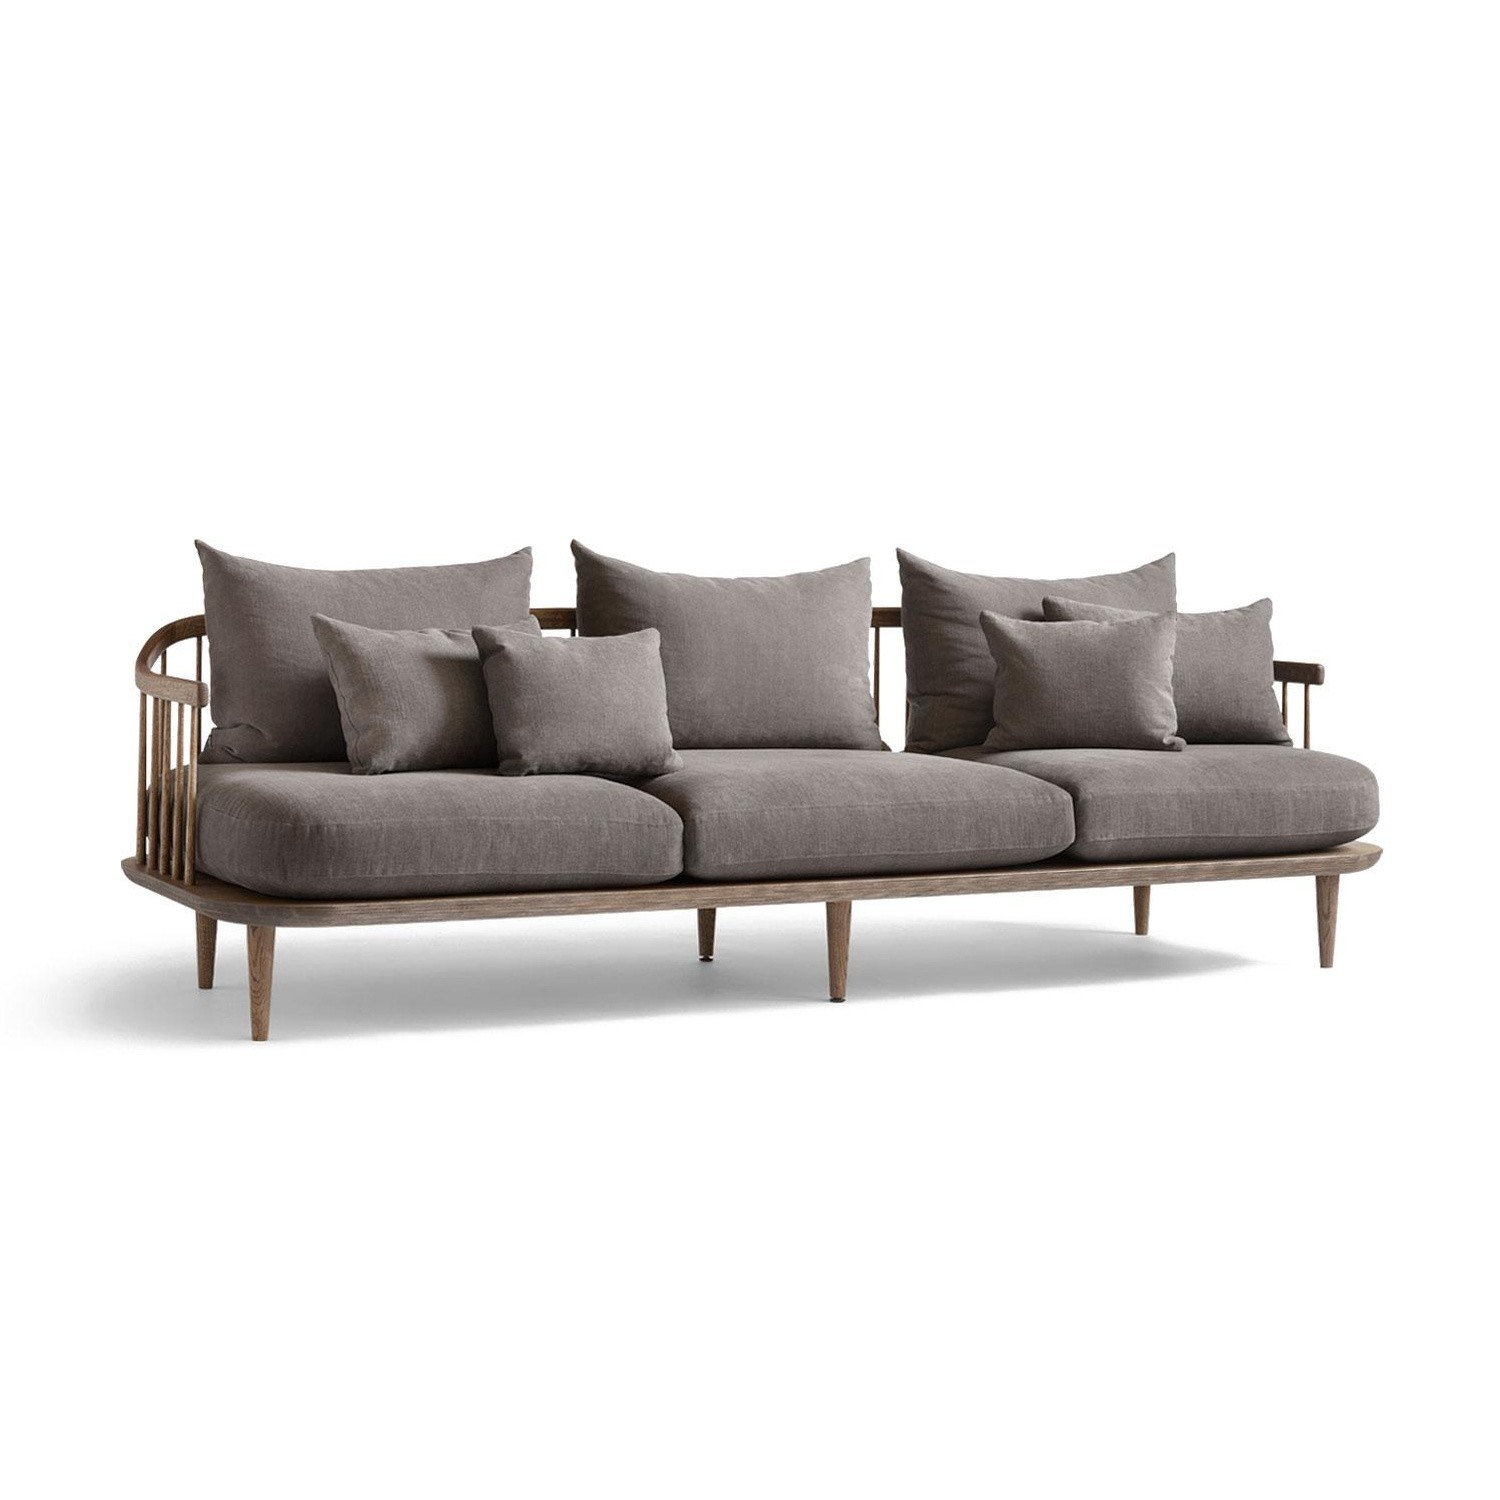 Tradition Fly Sc12 3 Seater Sofa